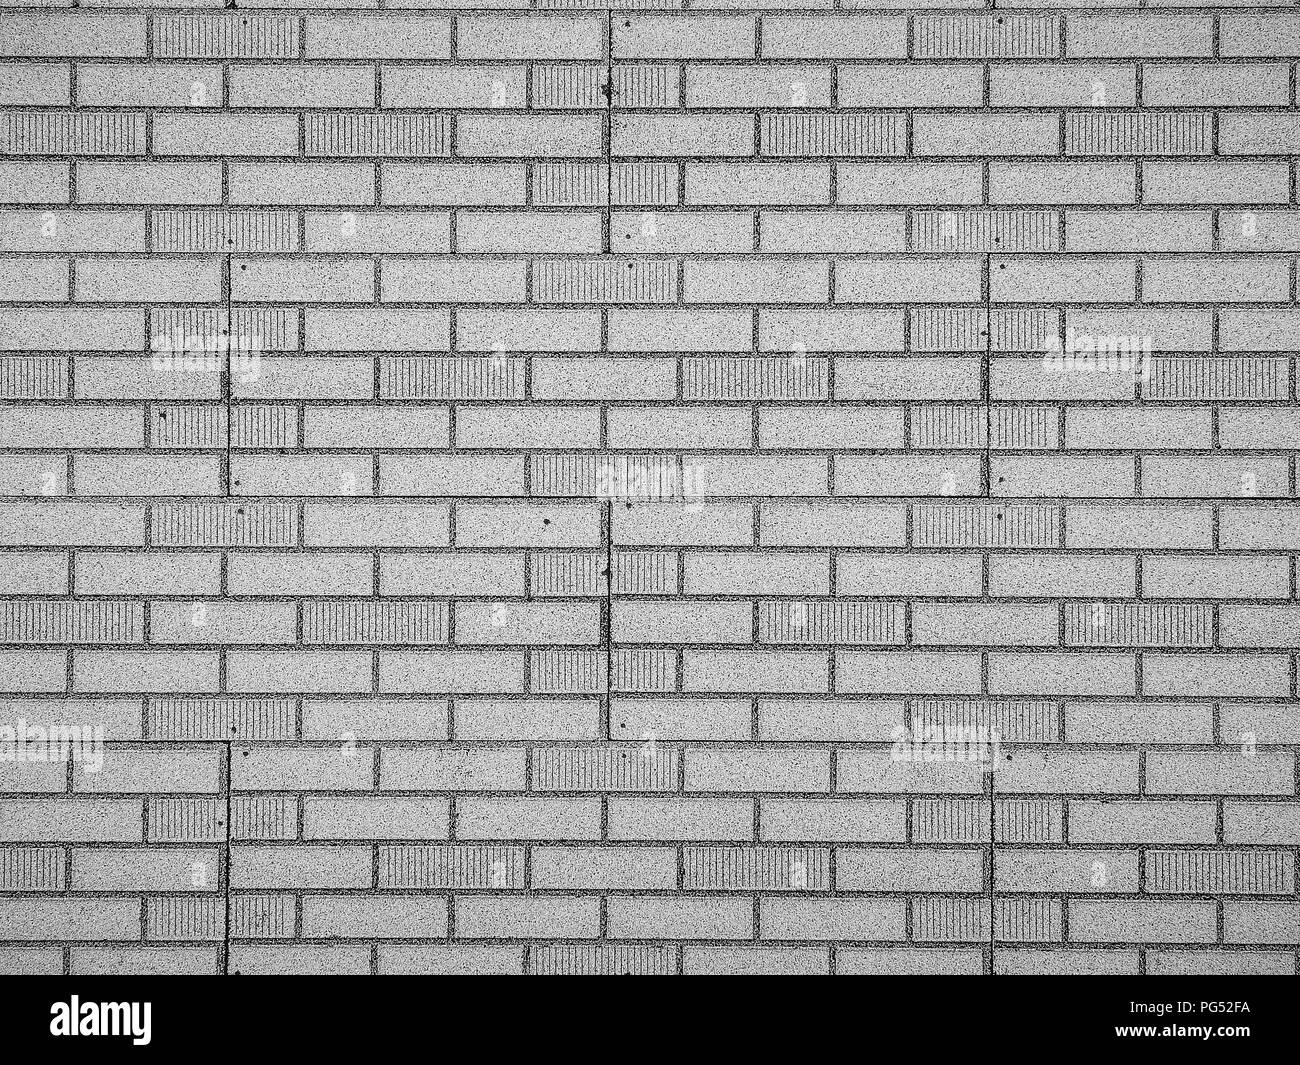 Brick wall in black and white - Stock Image